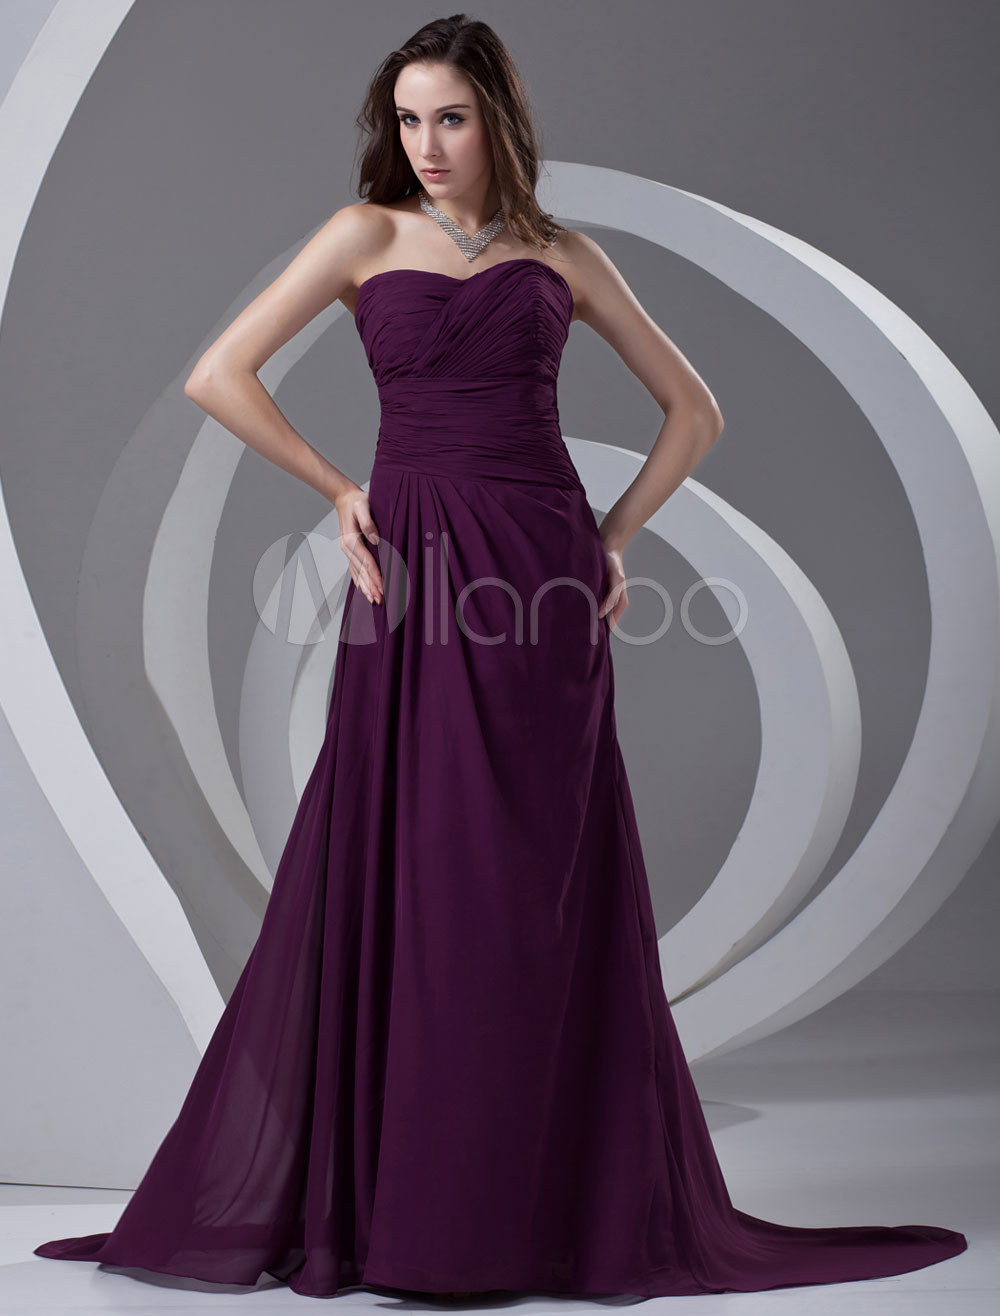 A-line Grape Chiffon Ruched Sweetheart Sweep Bridesmaid Dress For Wedding